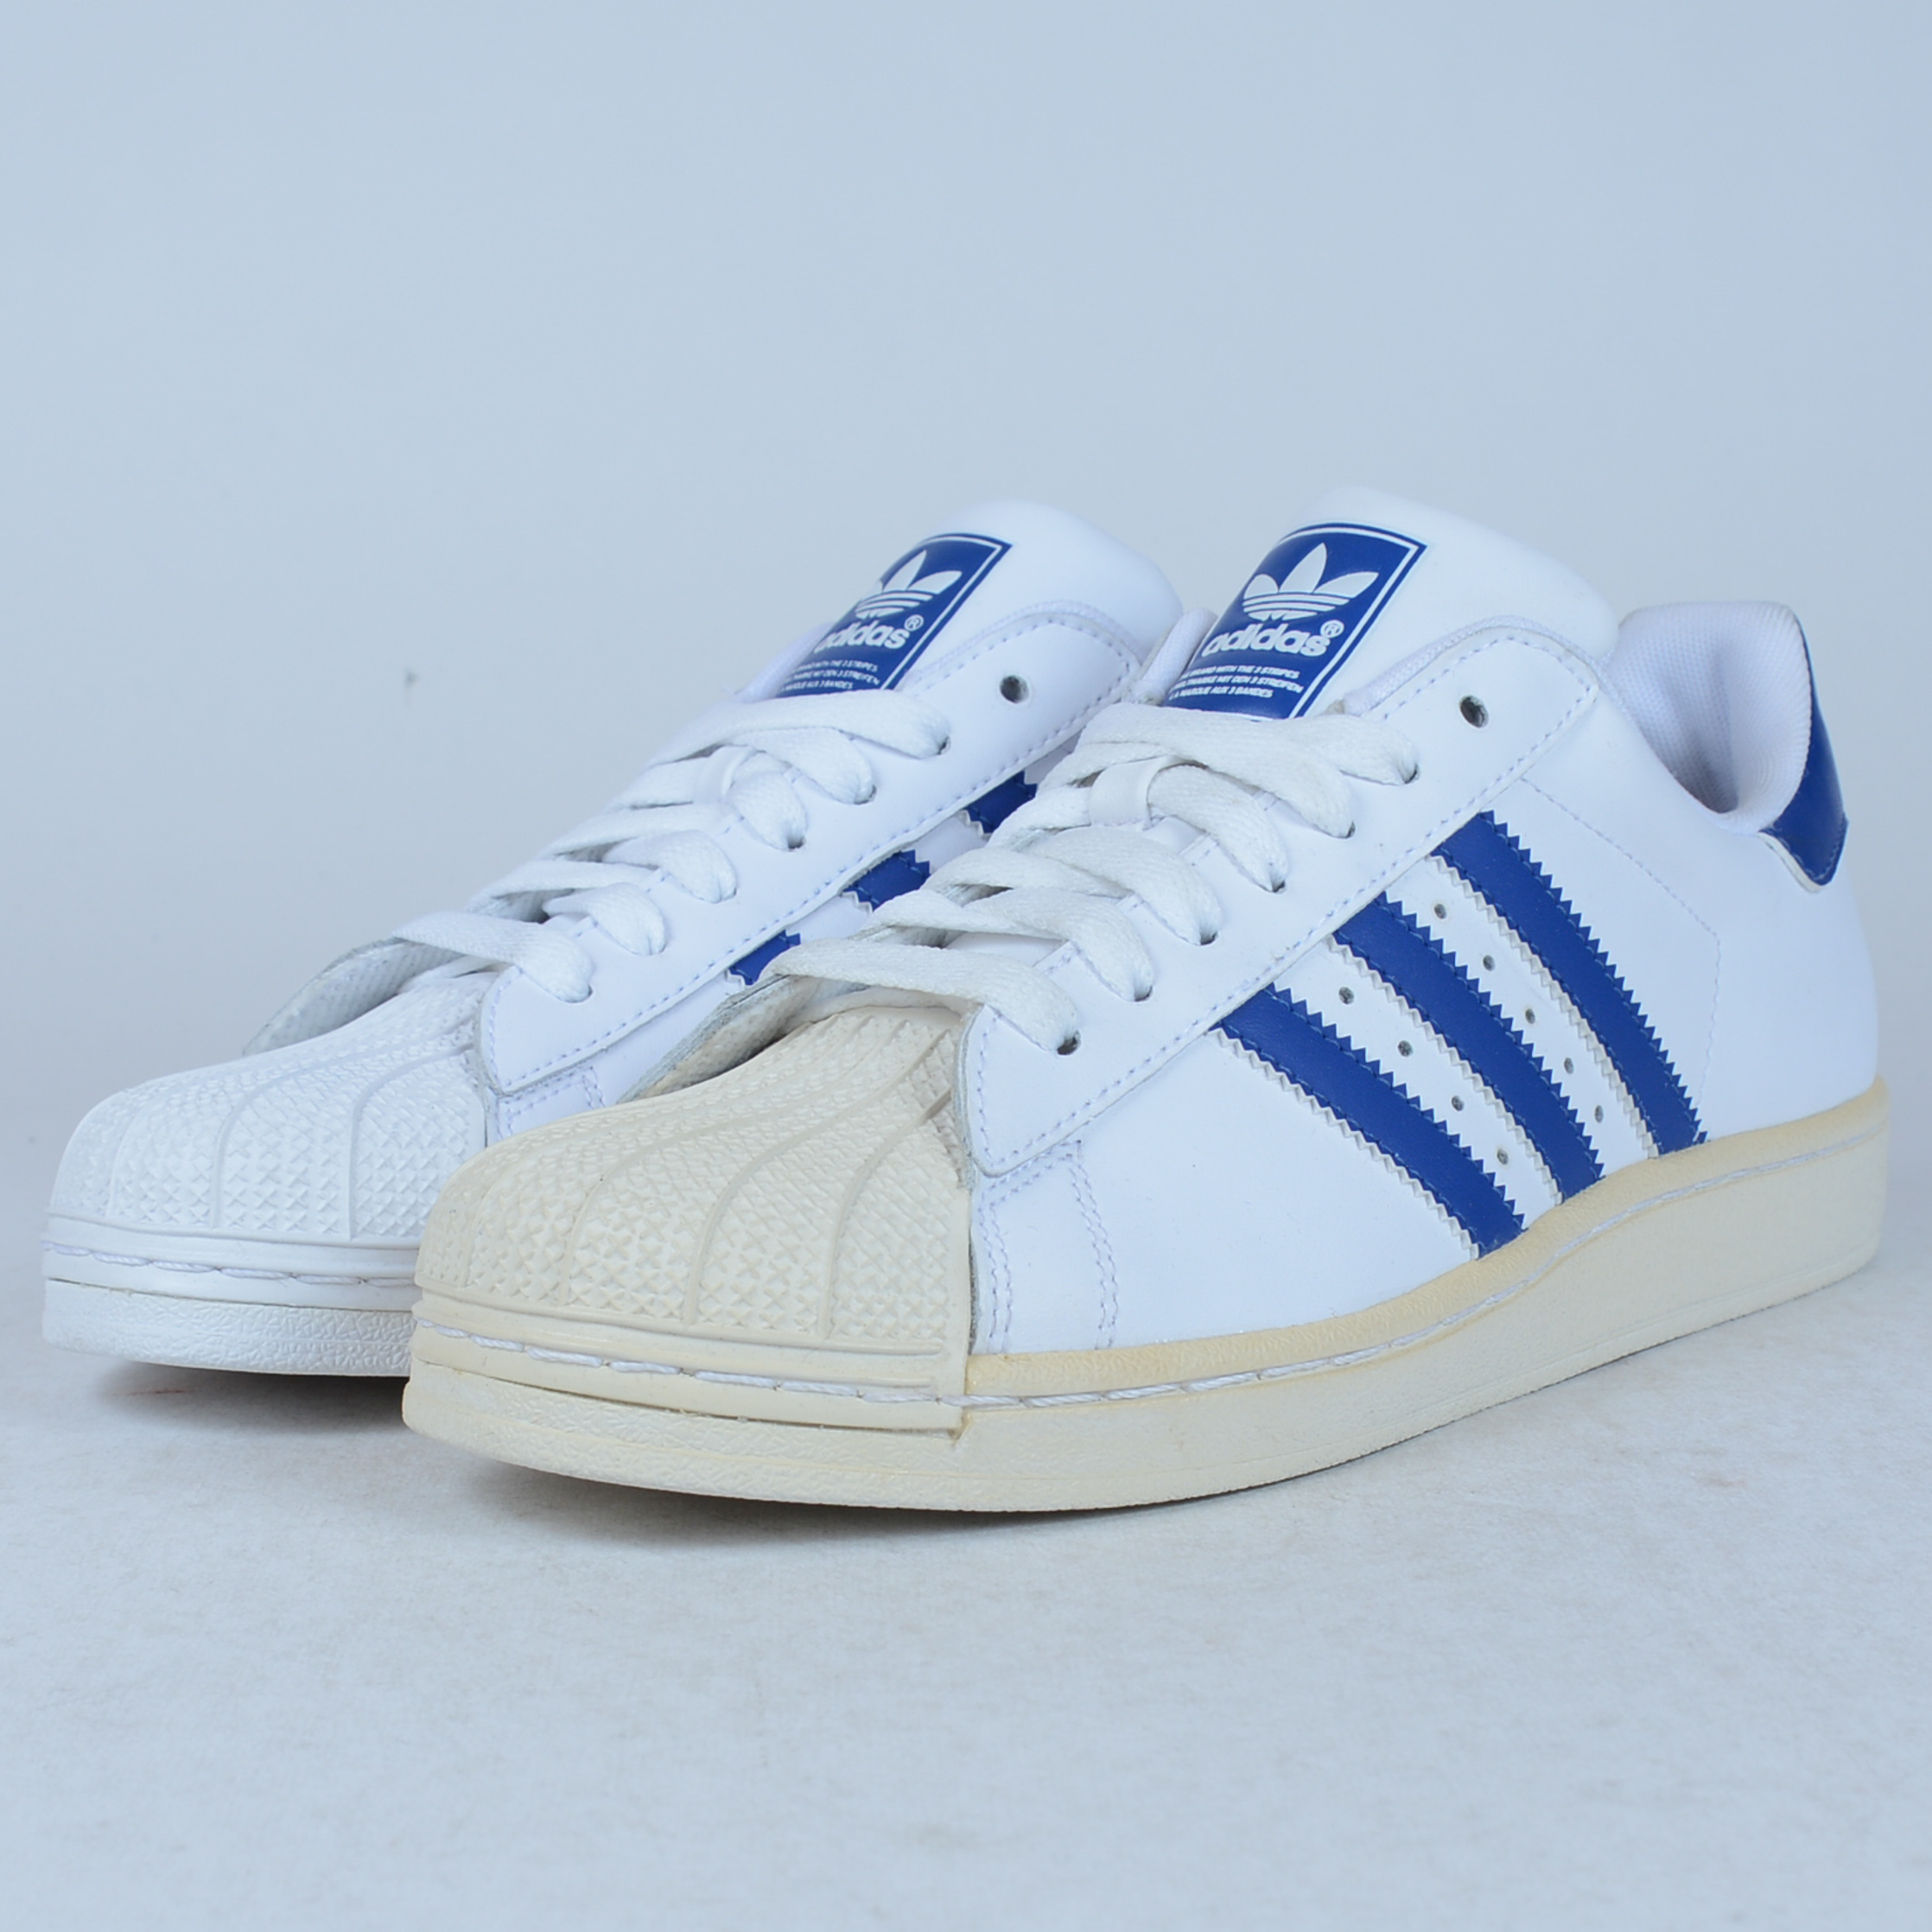 ADIDAS SUPERSTAR J WHITE ROYAL BLUE SIZE 6 BOYS G21192 DEFECT DISPLAY